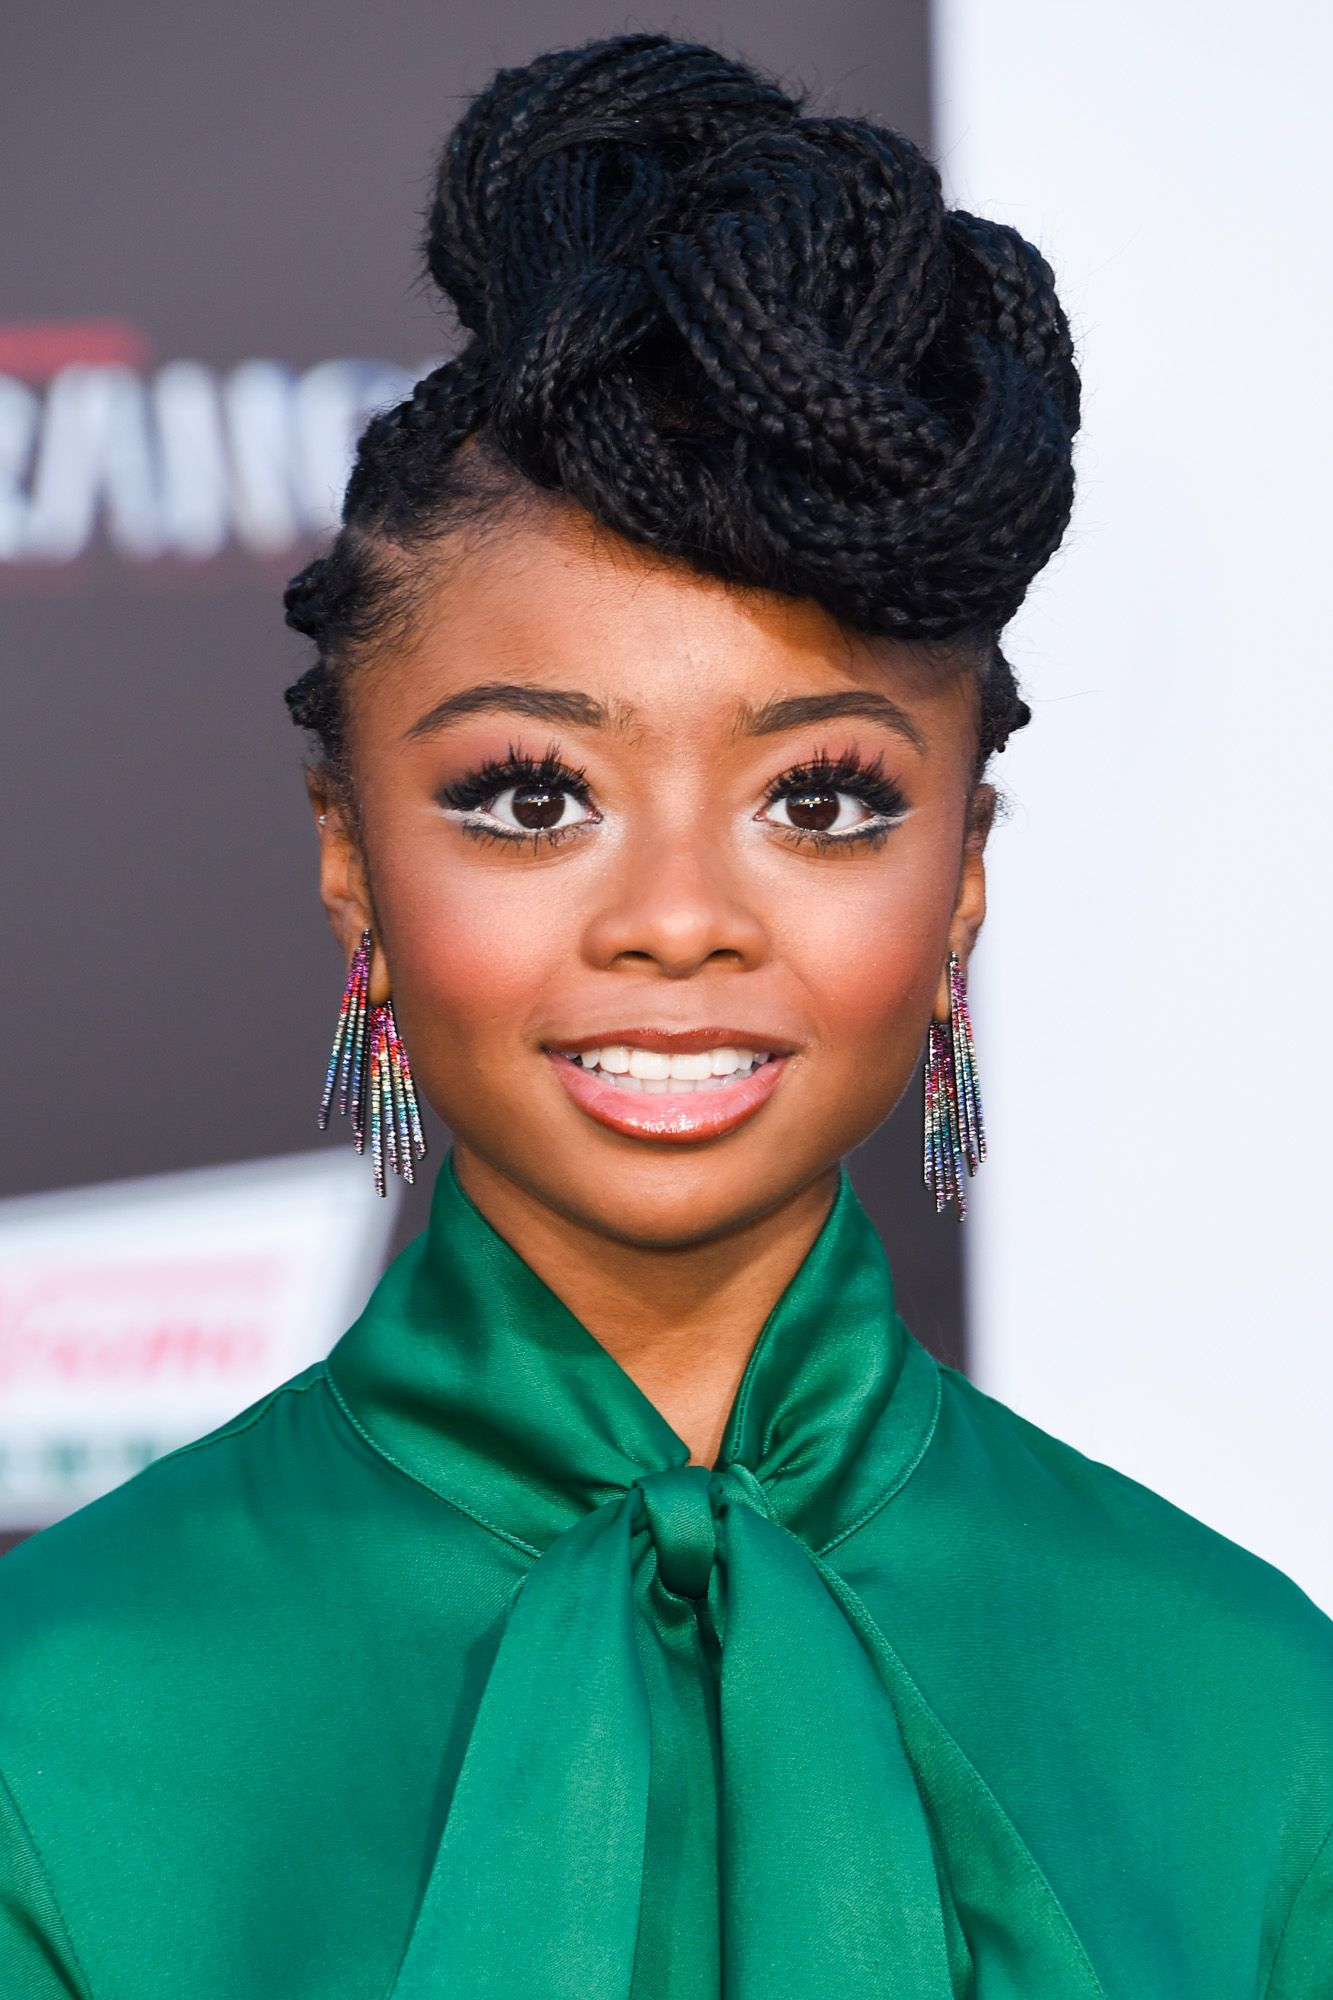 Skai Jackson Jackson's intricate top knot completely elevates her braided look.